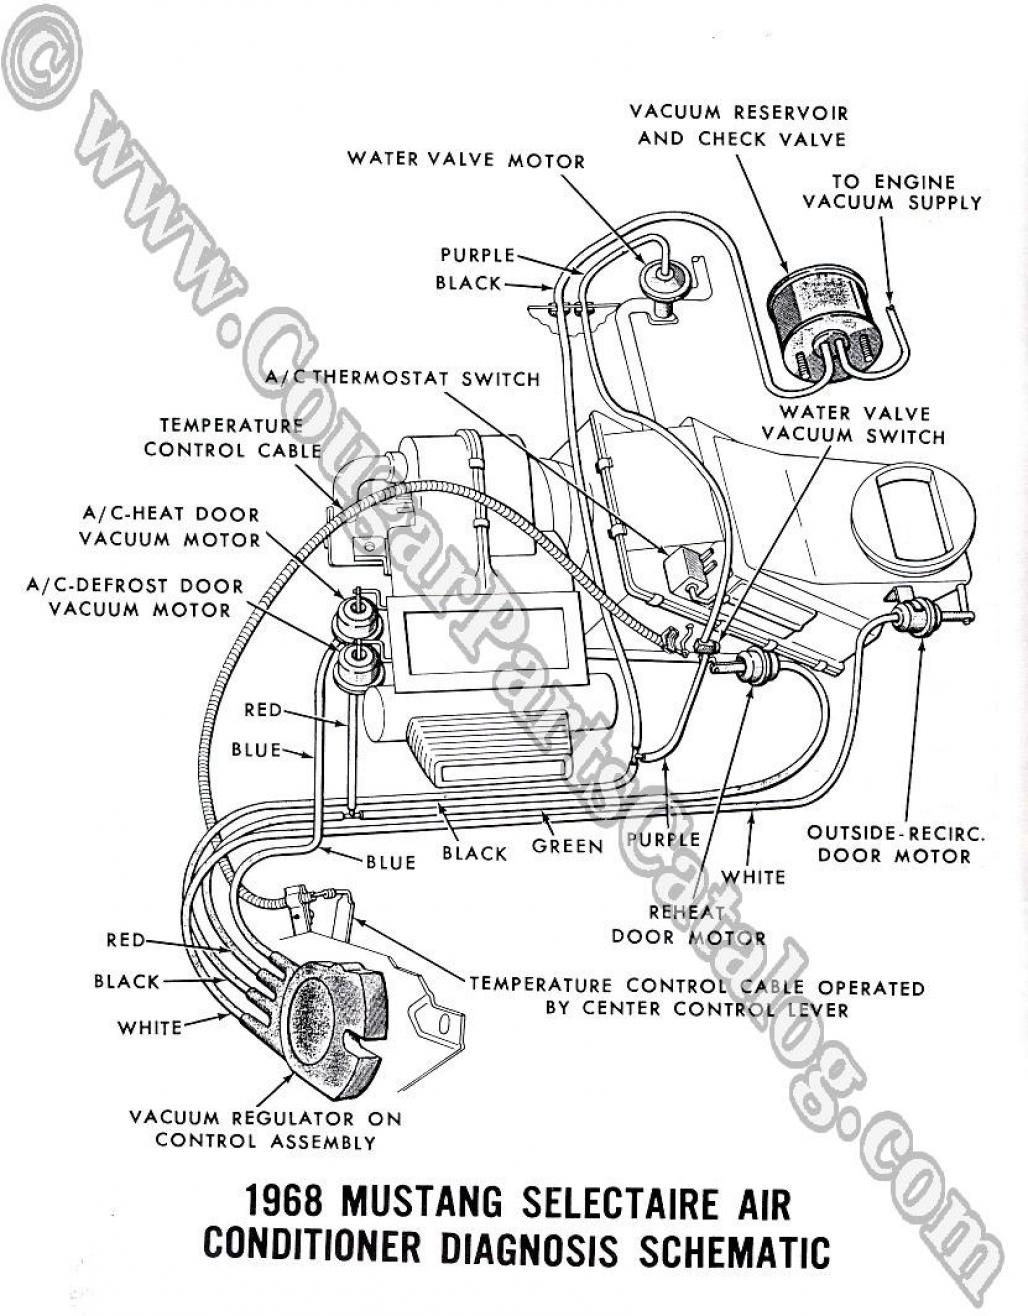 Wiring Diagram Additionally 1968 Mustang Wiring Diagram On